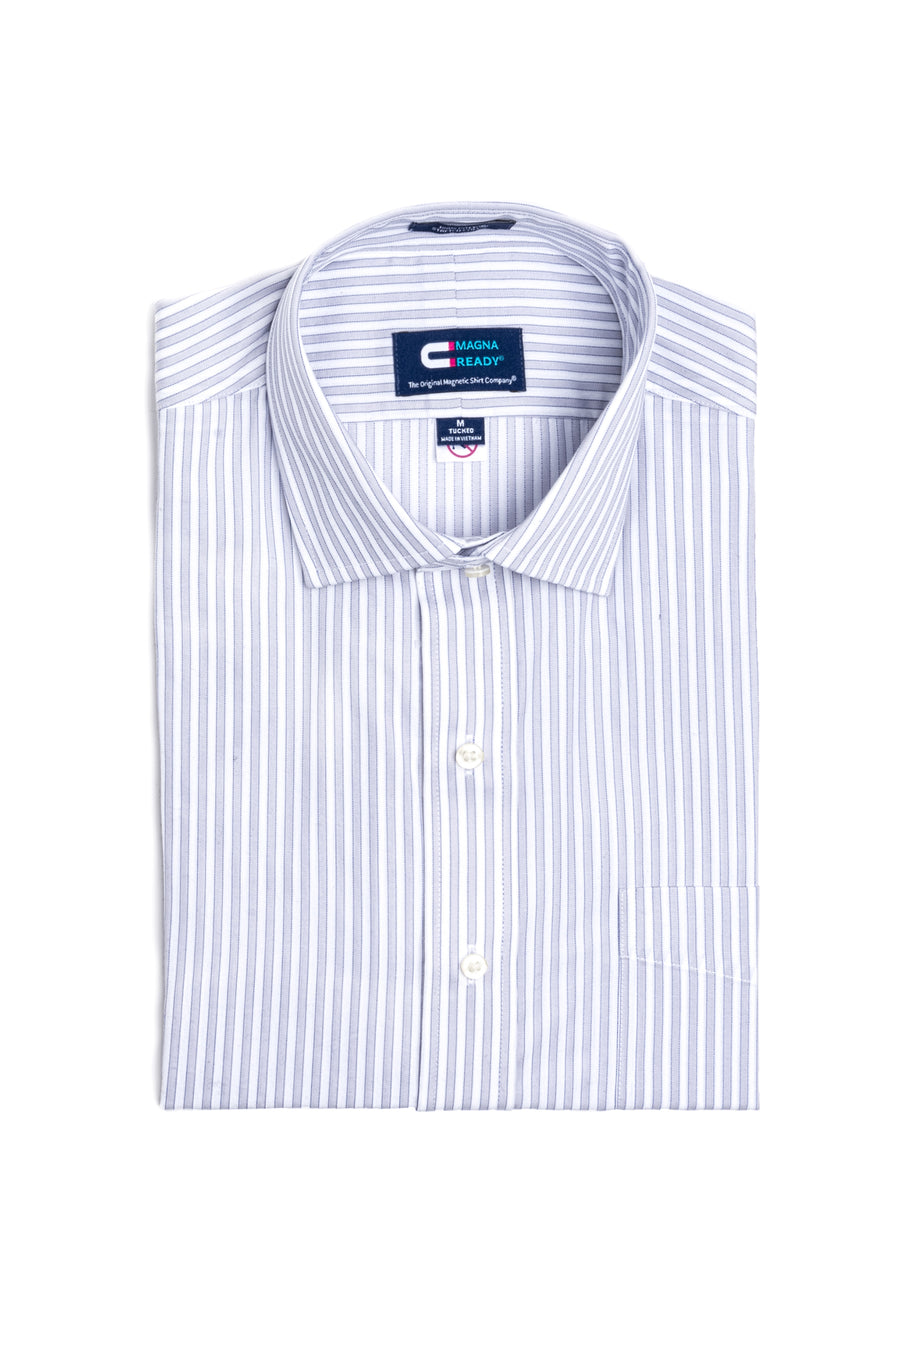 Blue and Grey Bengal Stripe Long Sleeve Dress Shirt with Magnetic Closures